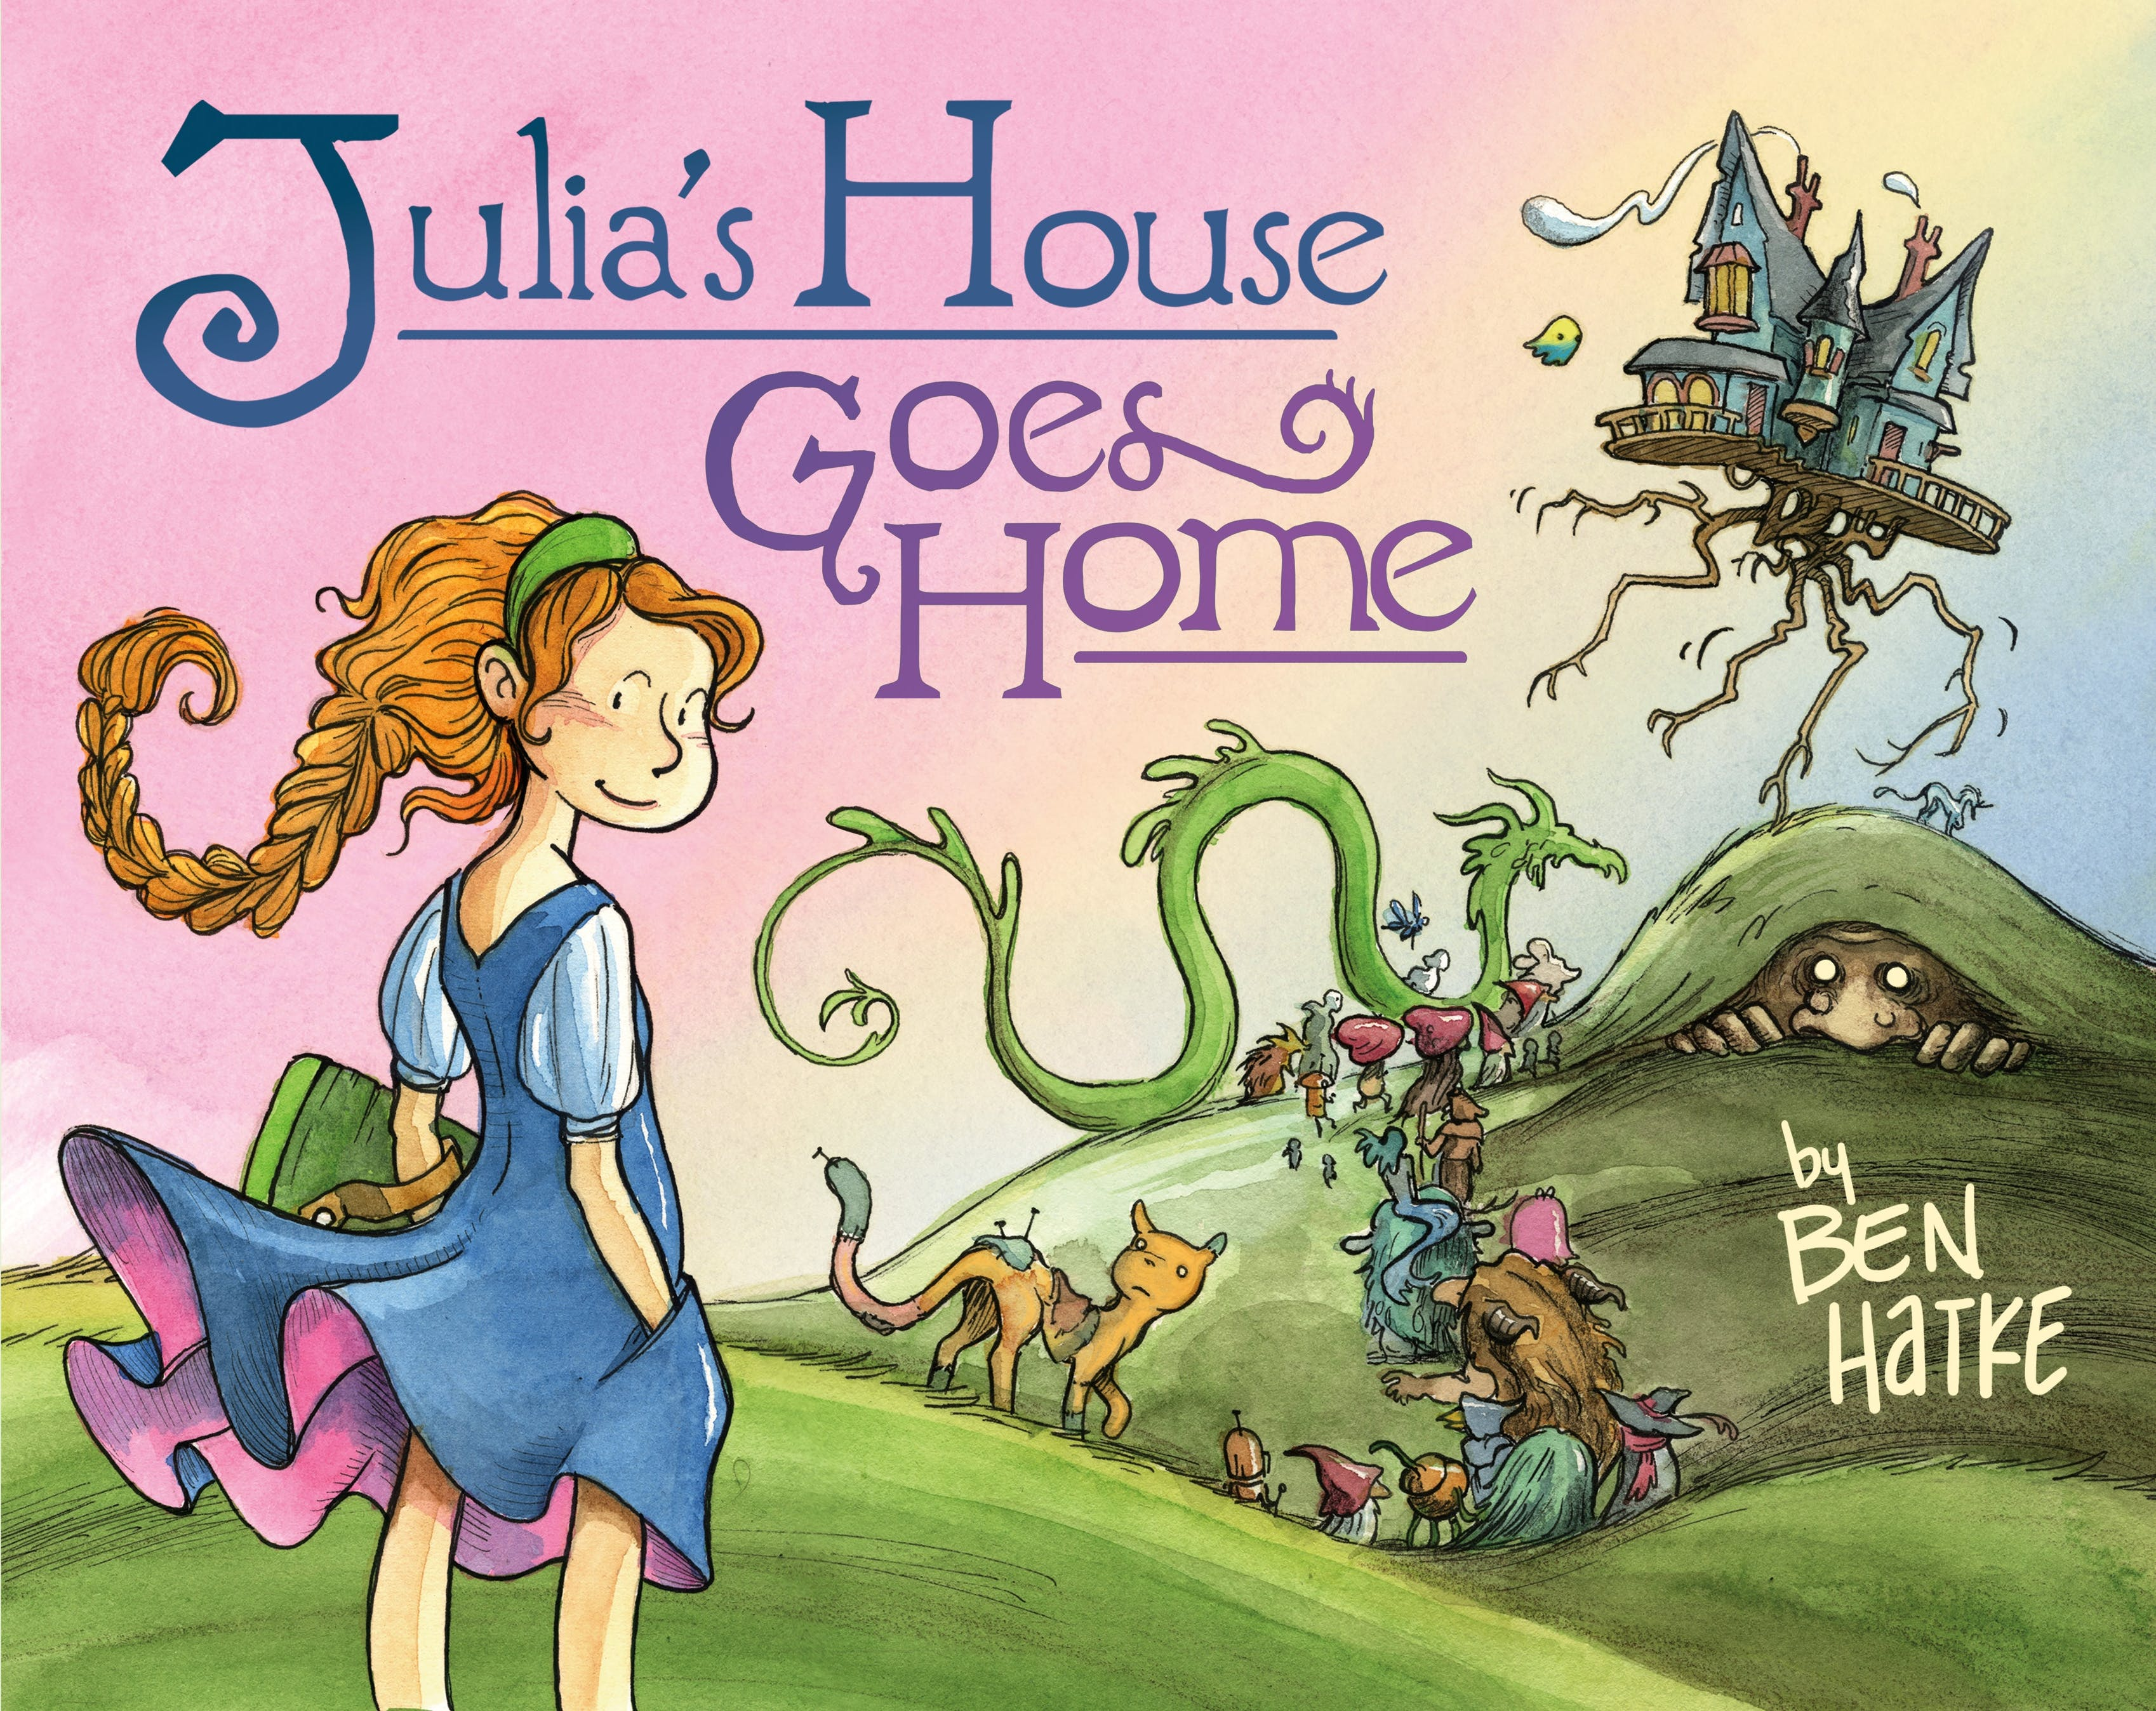 Image of Julia's House Goes Home